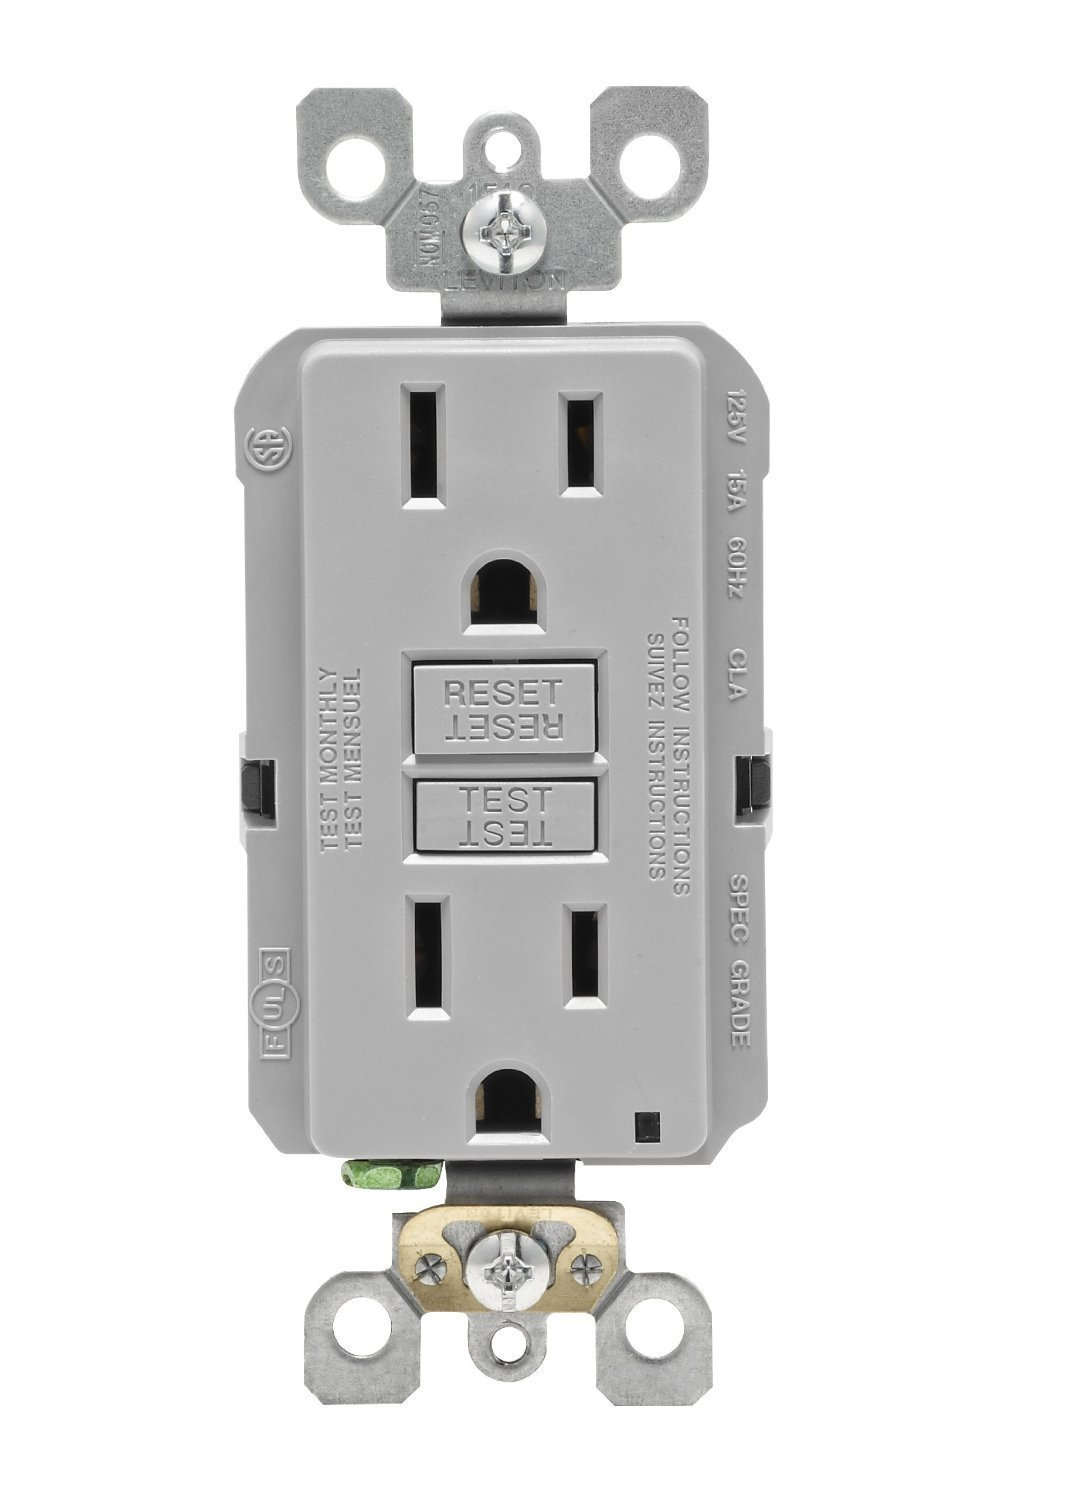 Leviton GFNT1-GY Self-Test Smartlockpro Slim GFCI Non-Tamper-Resistant Receptacle with LED Indicator, 15-Amp, 10 Pack, Gray